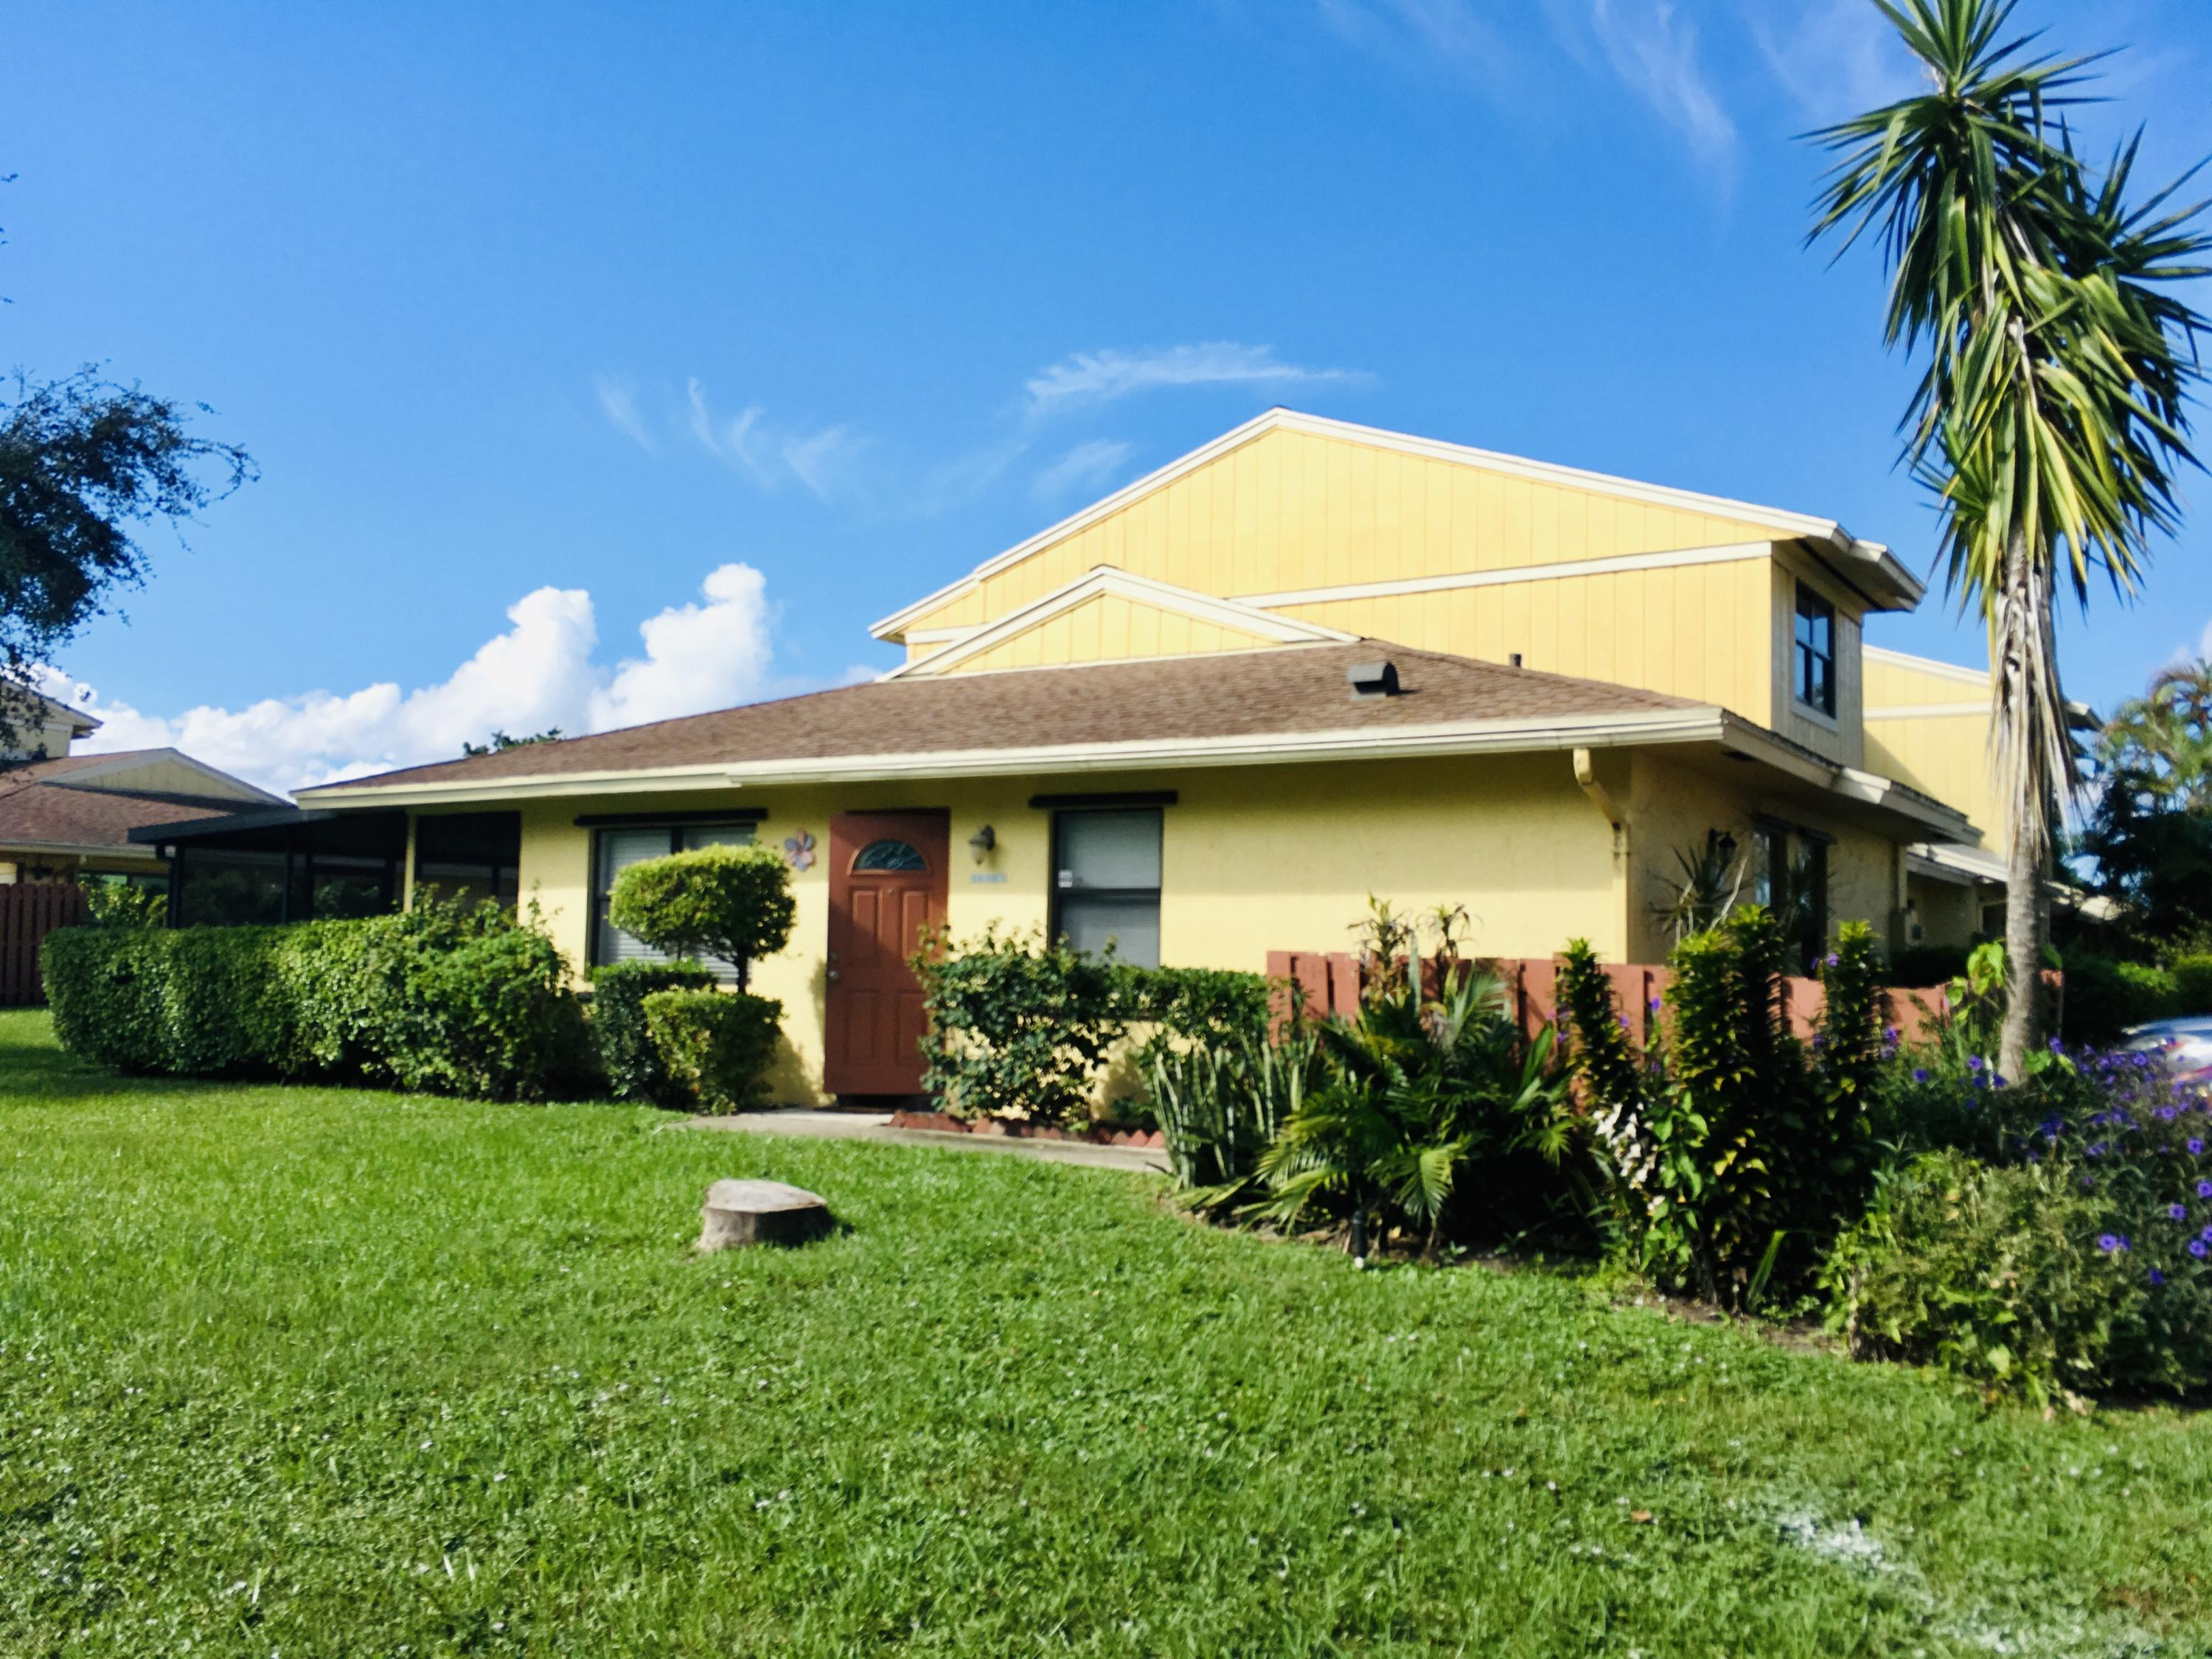 16387  Water Way 16387 For Sale 10721350, FL